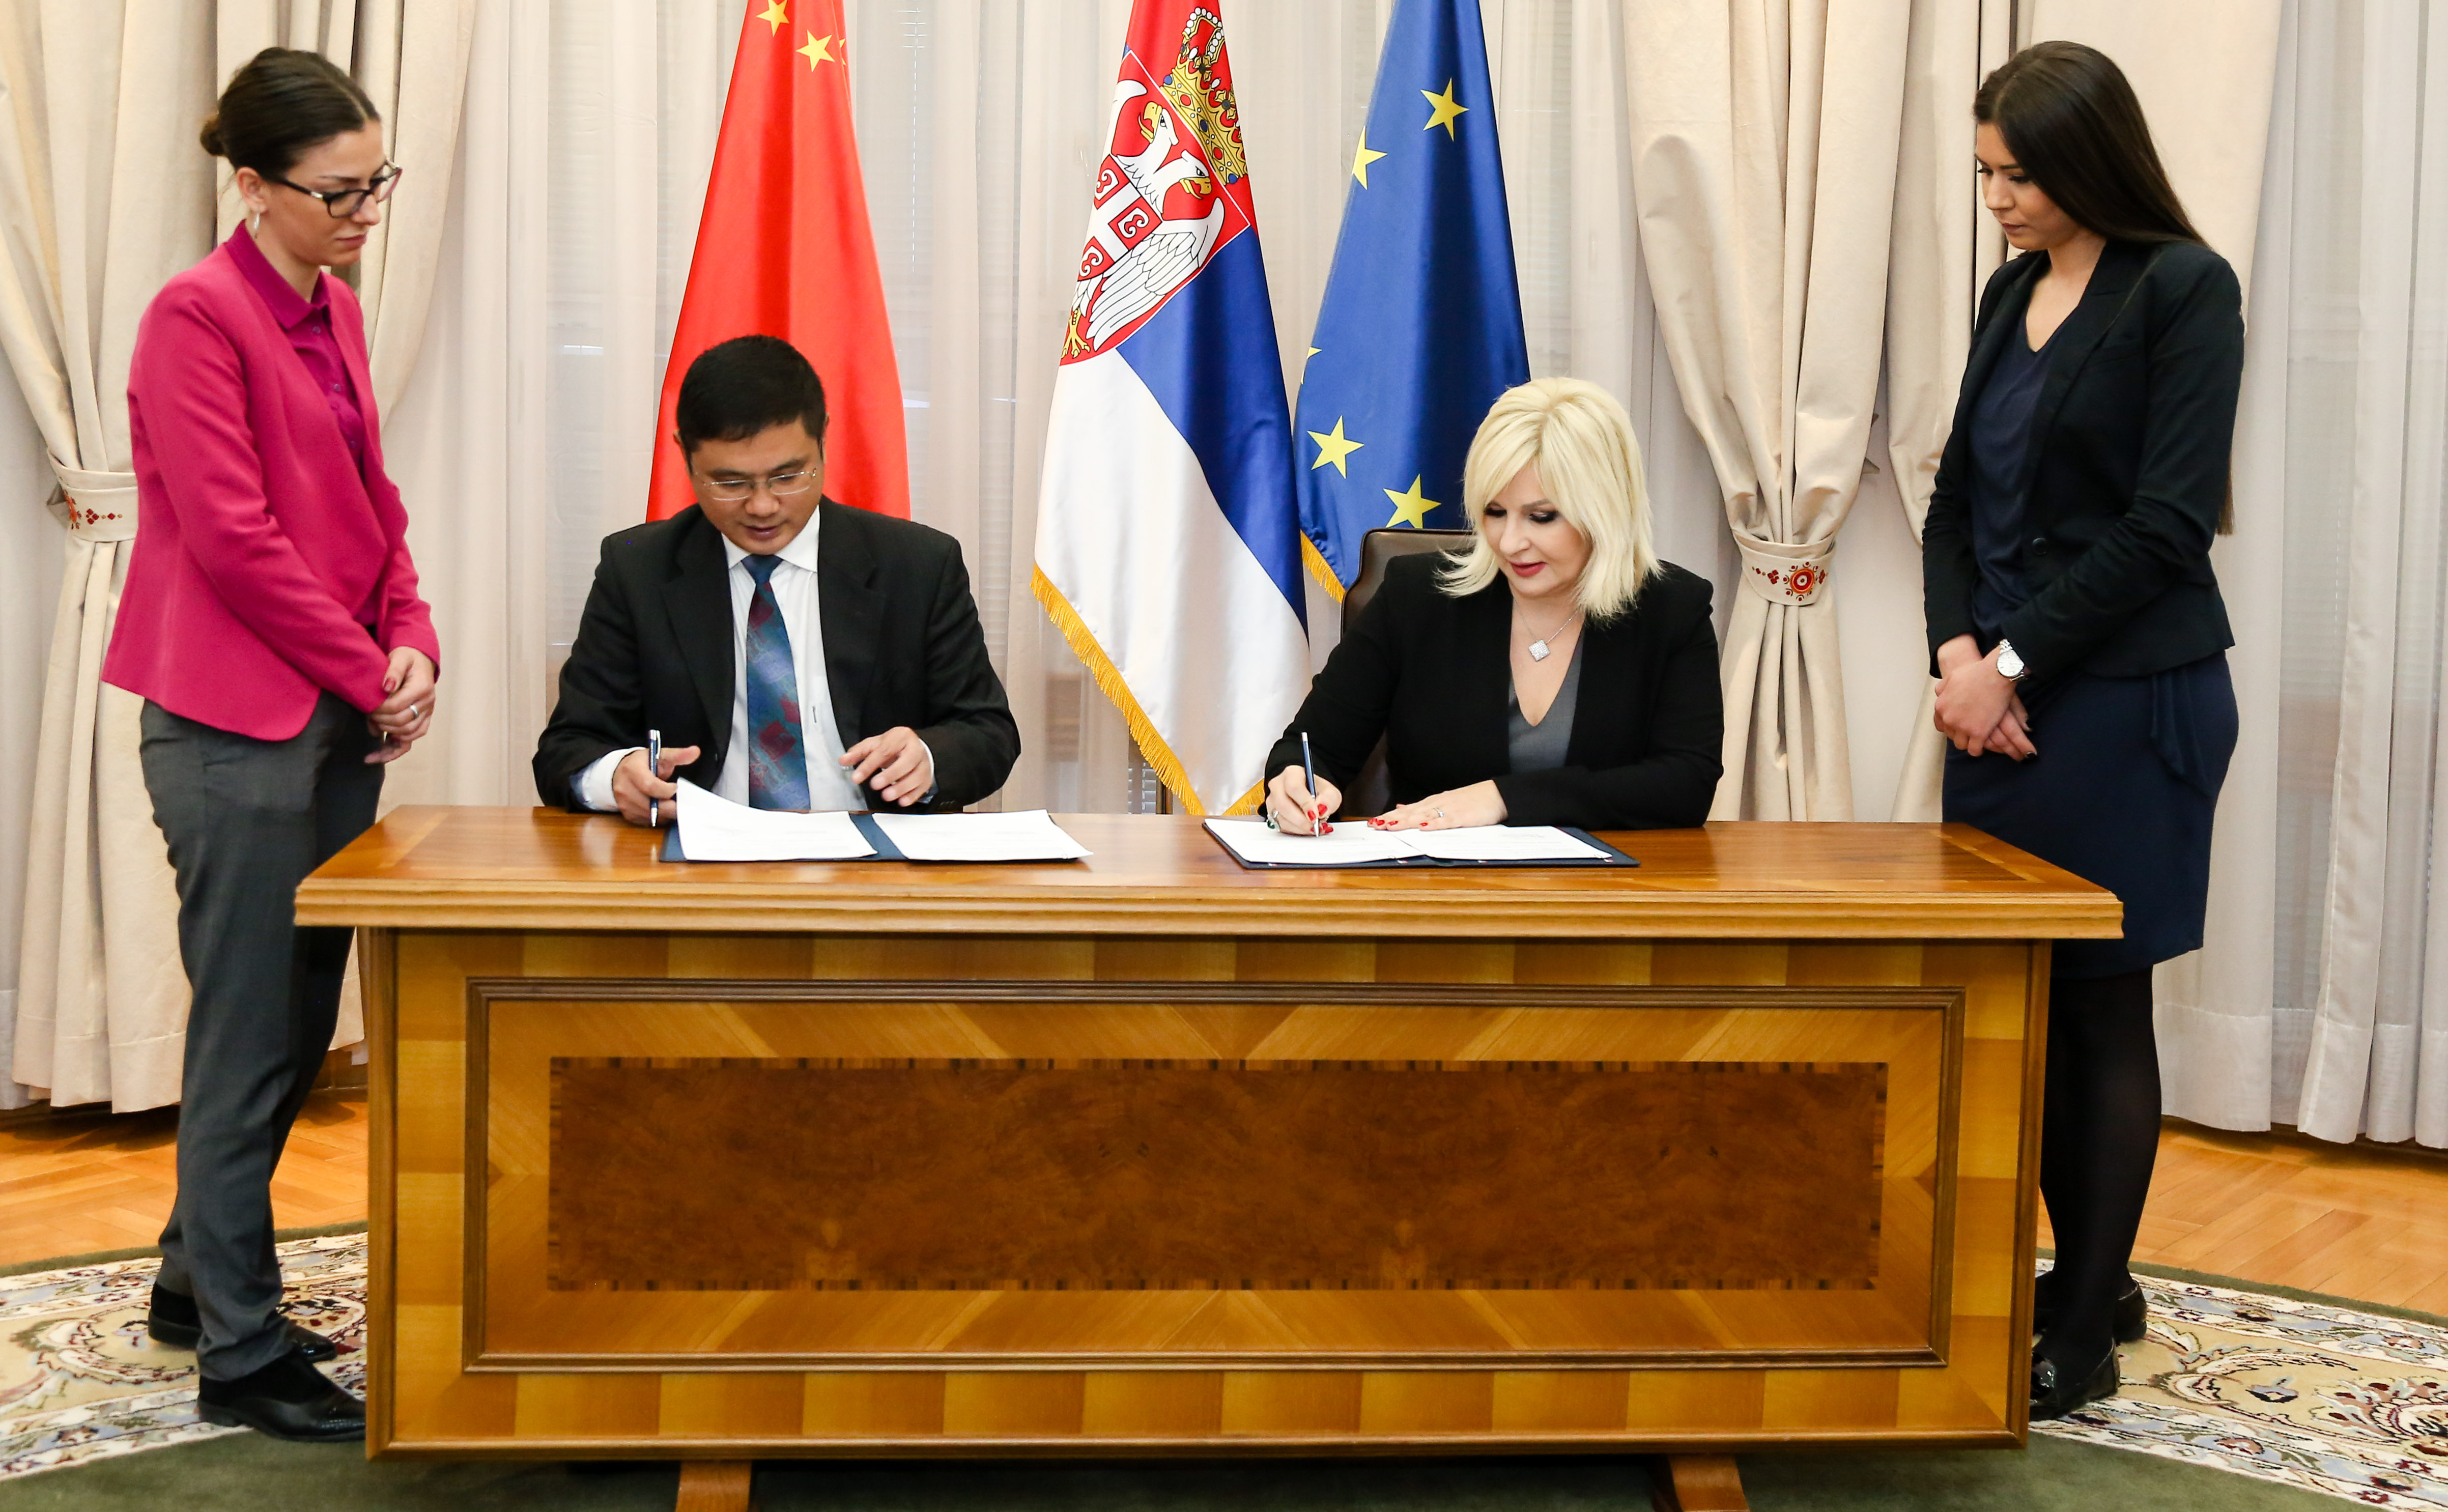 Serbia to invest 1.5 bln euro in Pozega-Boljare motorway project